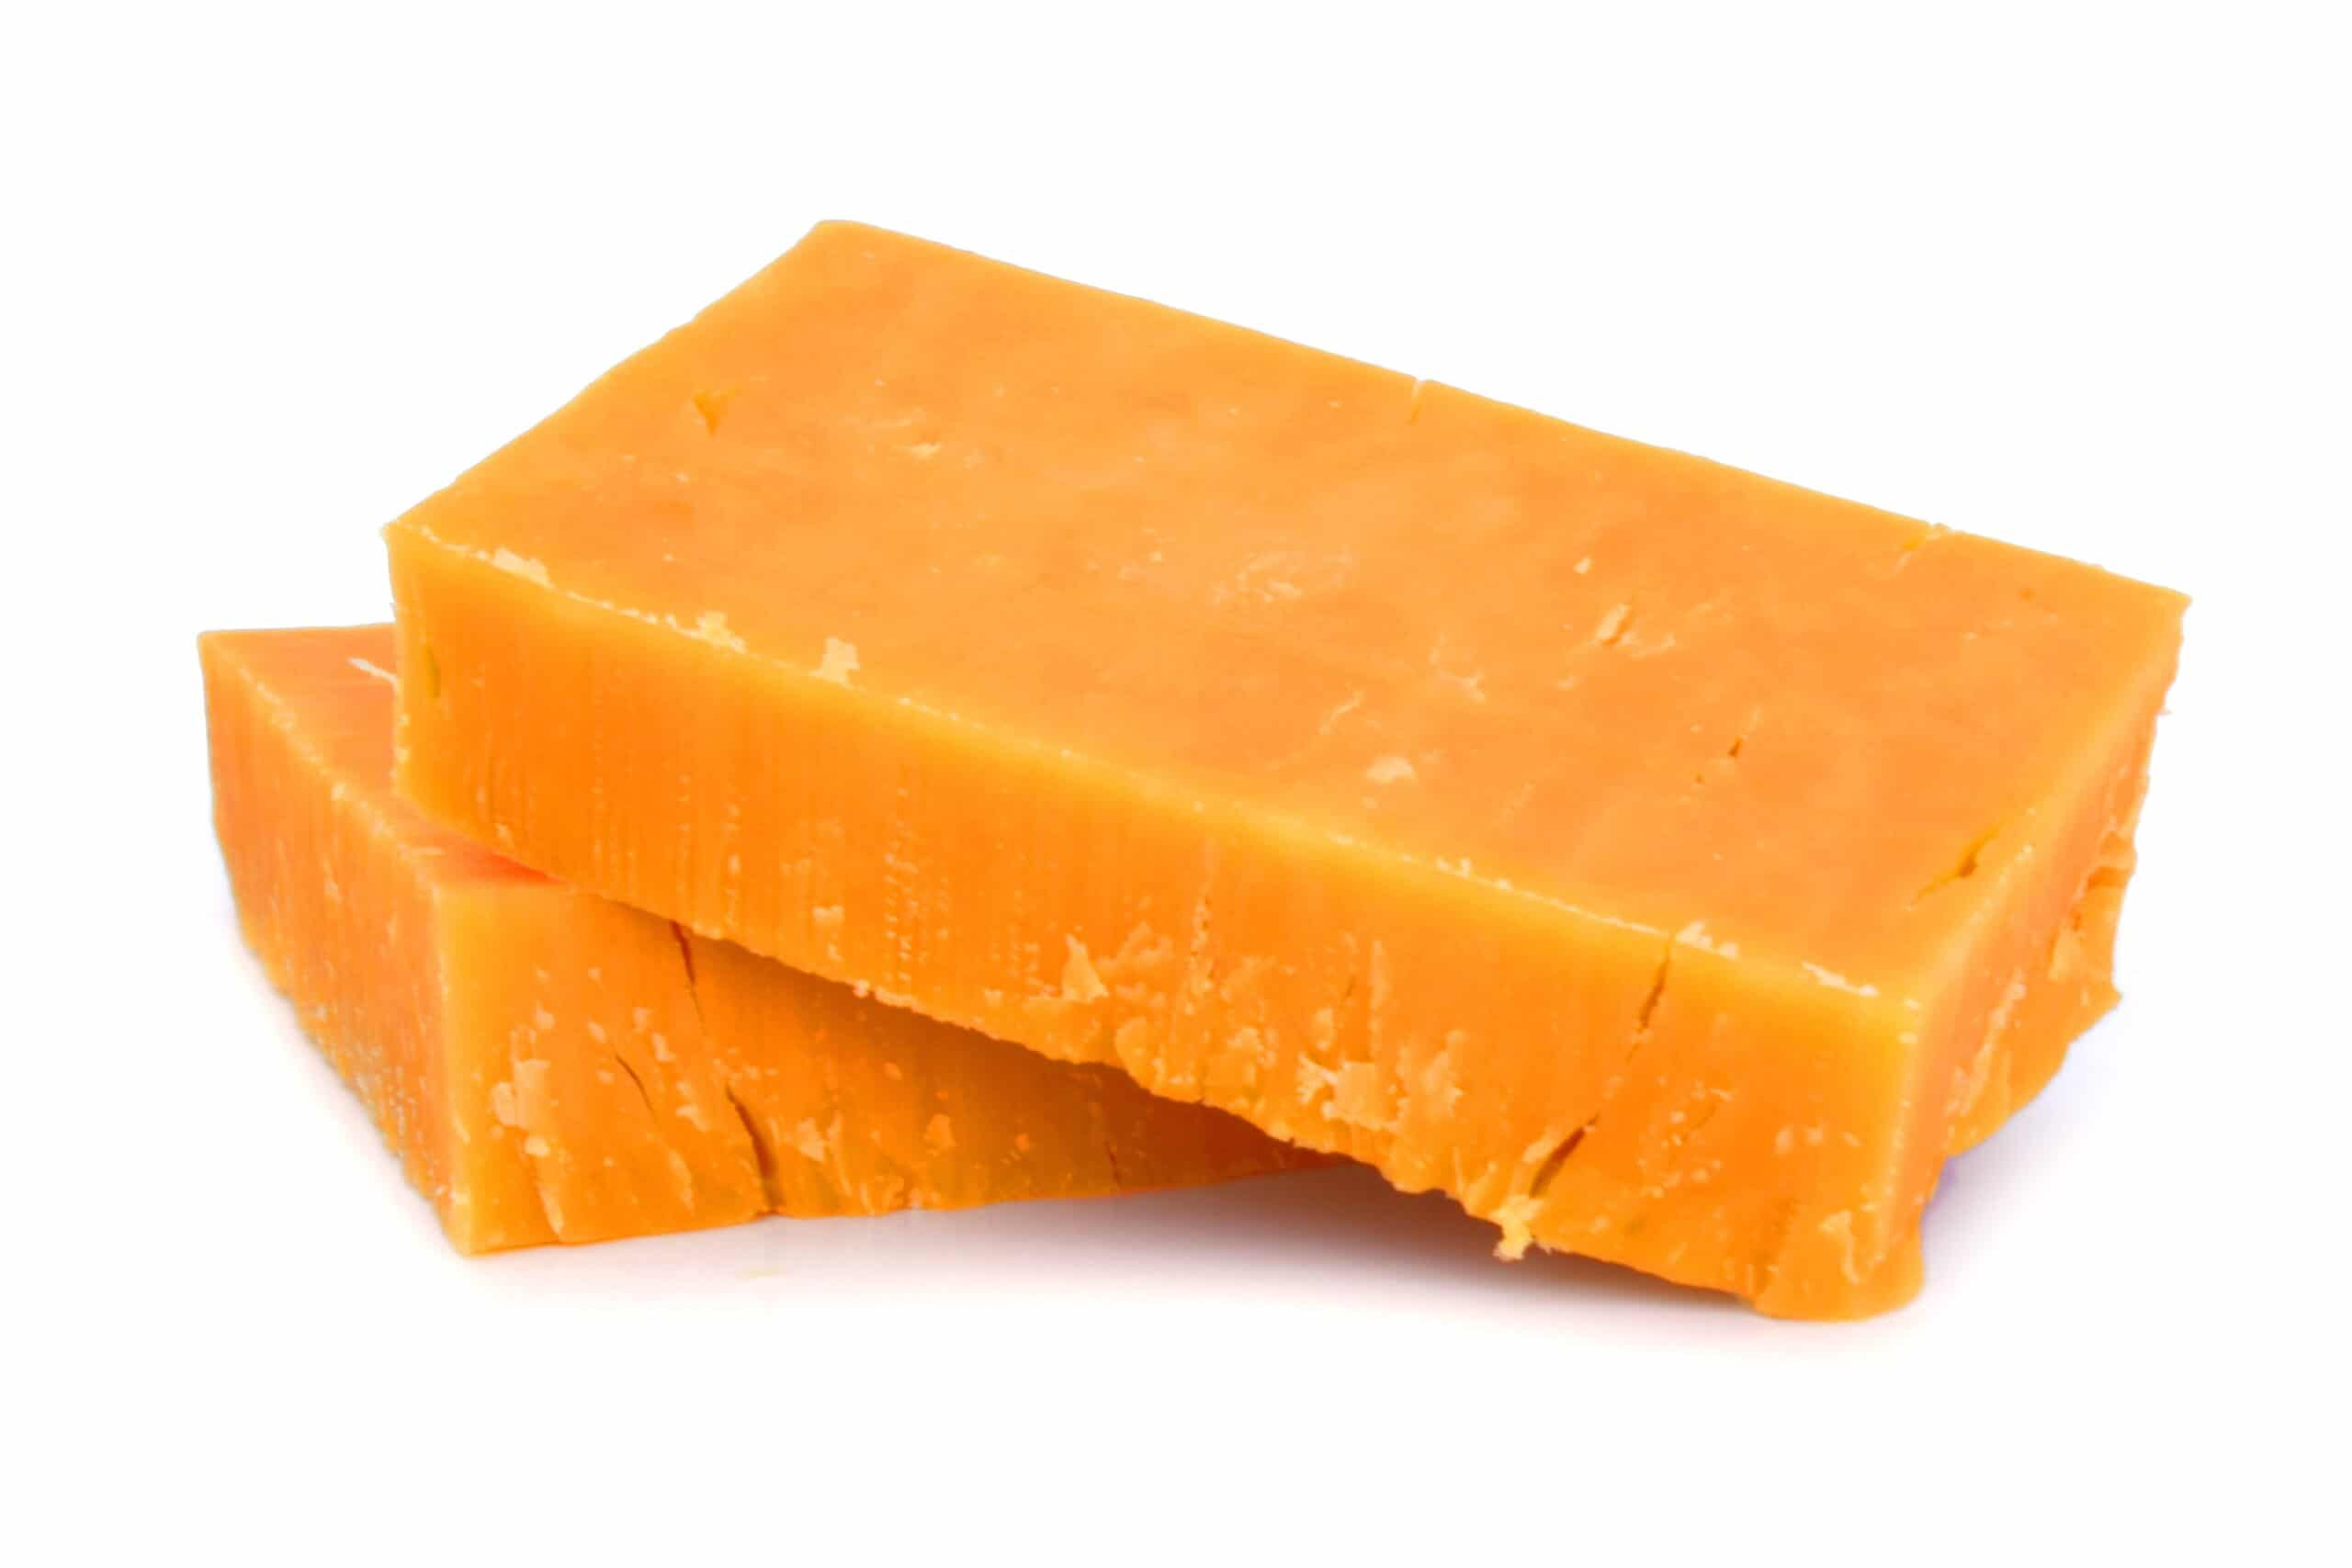 How To Melt Cheddar Cheese In The Microwave